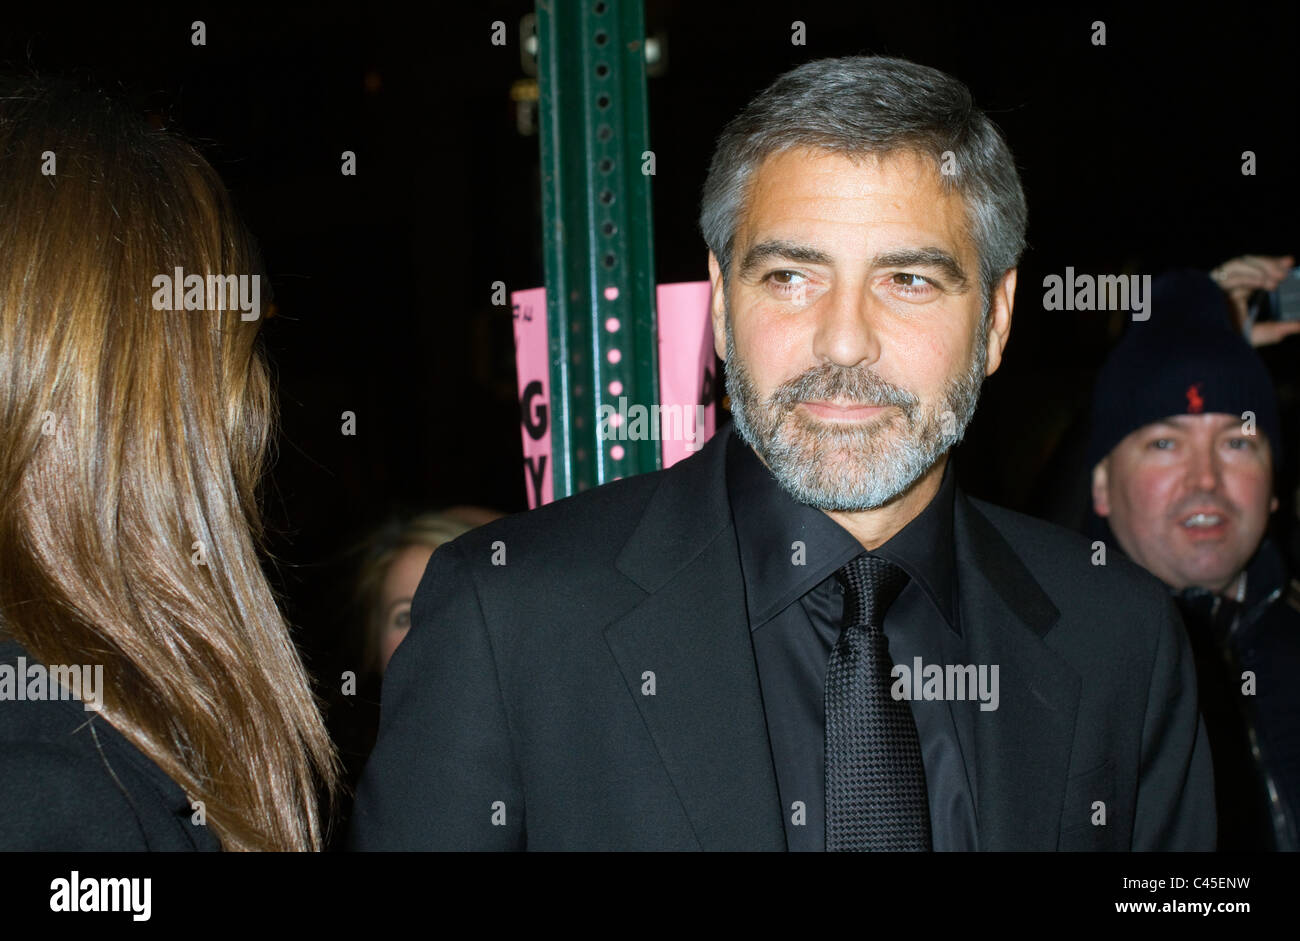 Actor George Clooney arrives for the New York Film Critics Circle Awards - Stock Image